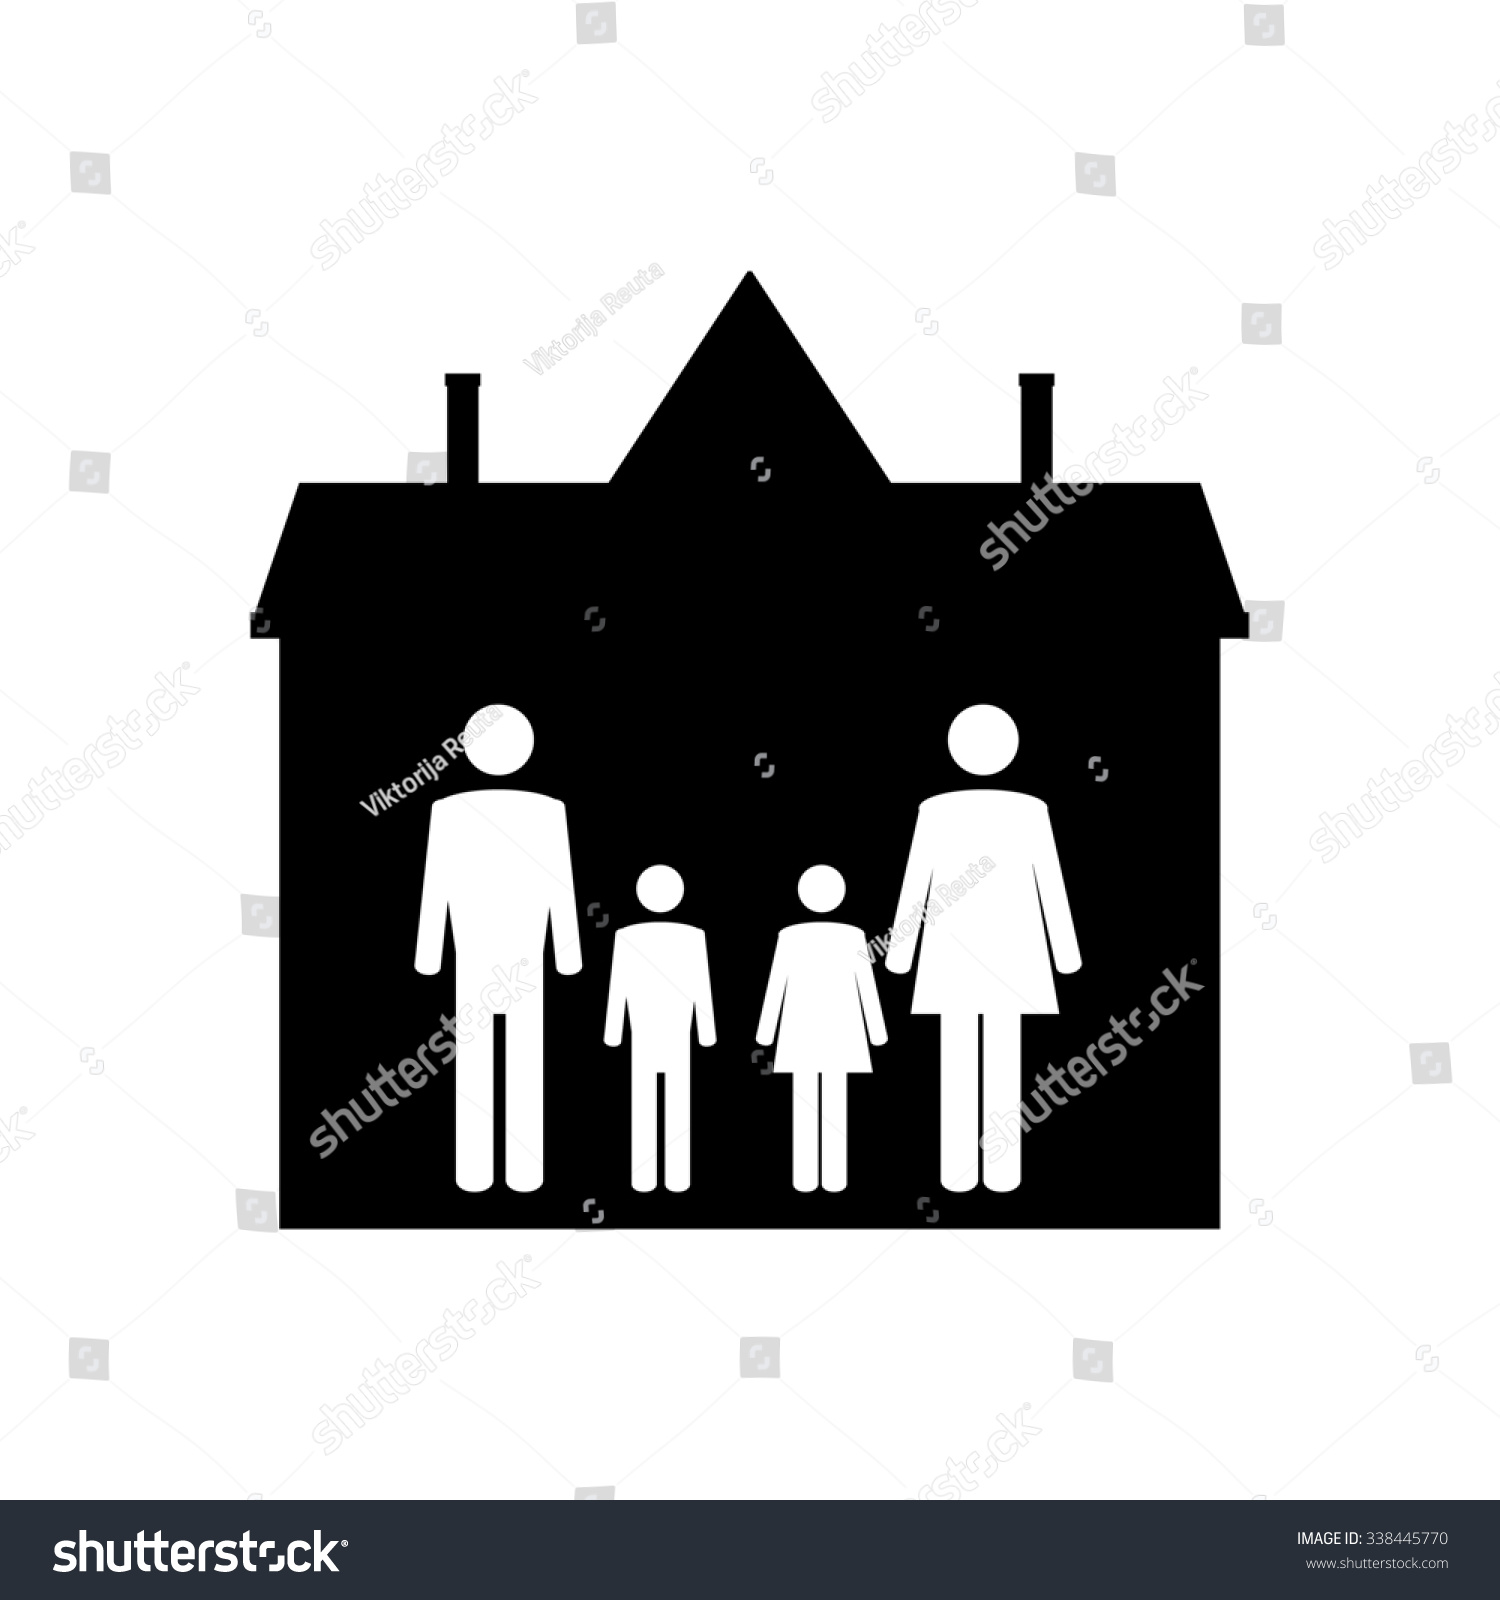 Family Symbols Mother Father Son Daughter Stock Illustration